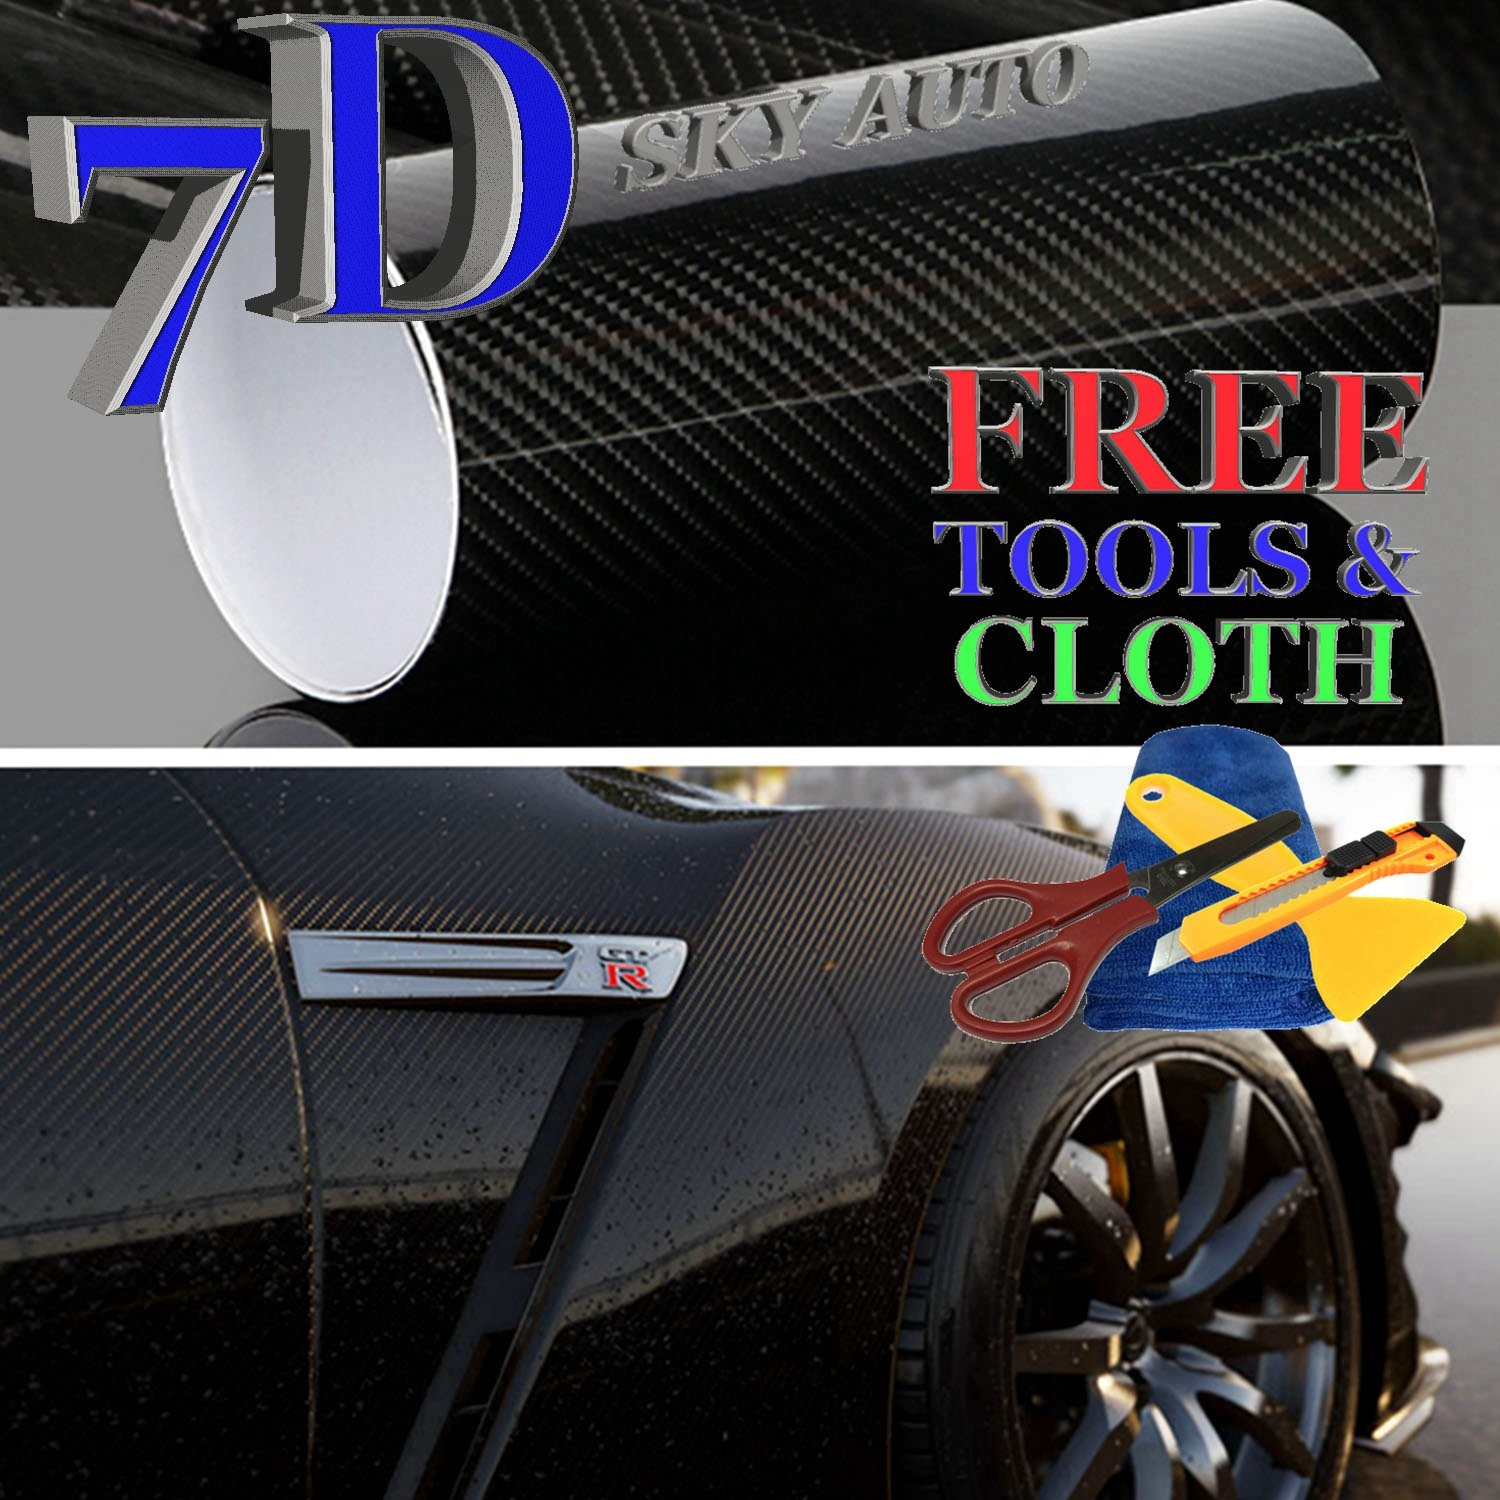 Sky Auto INC 7D Black High GLOSSY Carbon Fiber Vinyl Wrap Sheet With Air Release (15FT X 5FT - 180'' X 60'')